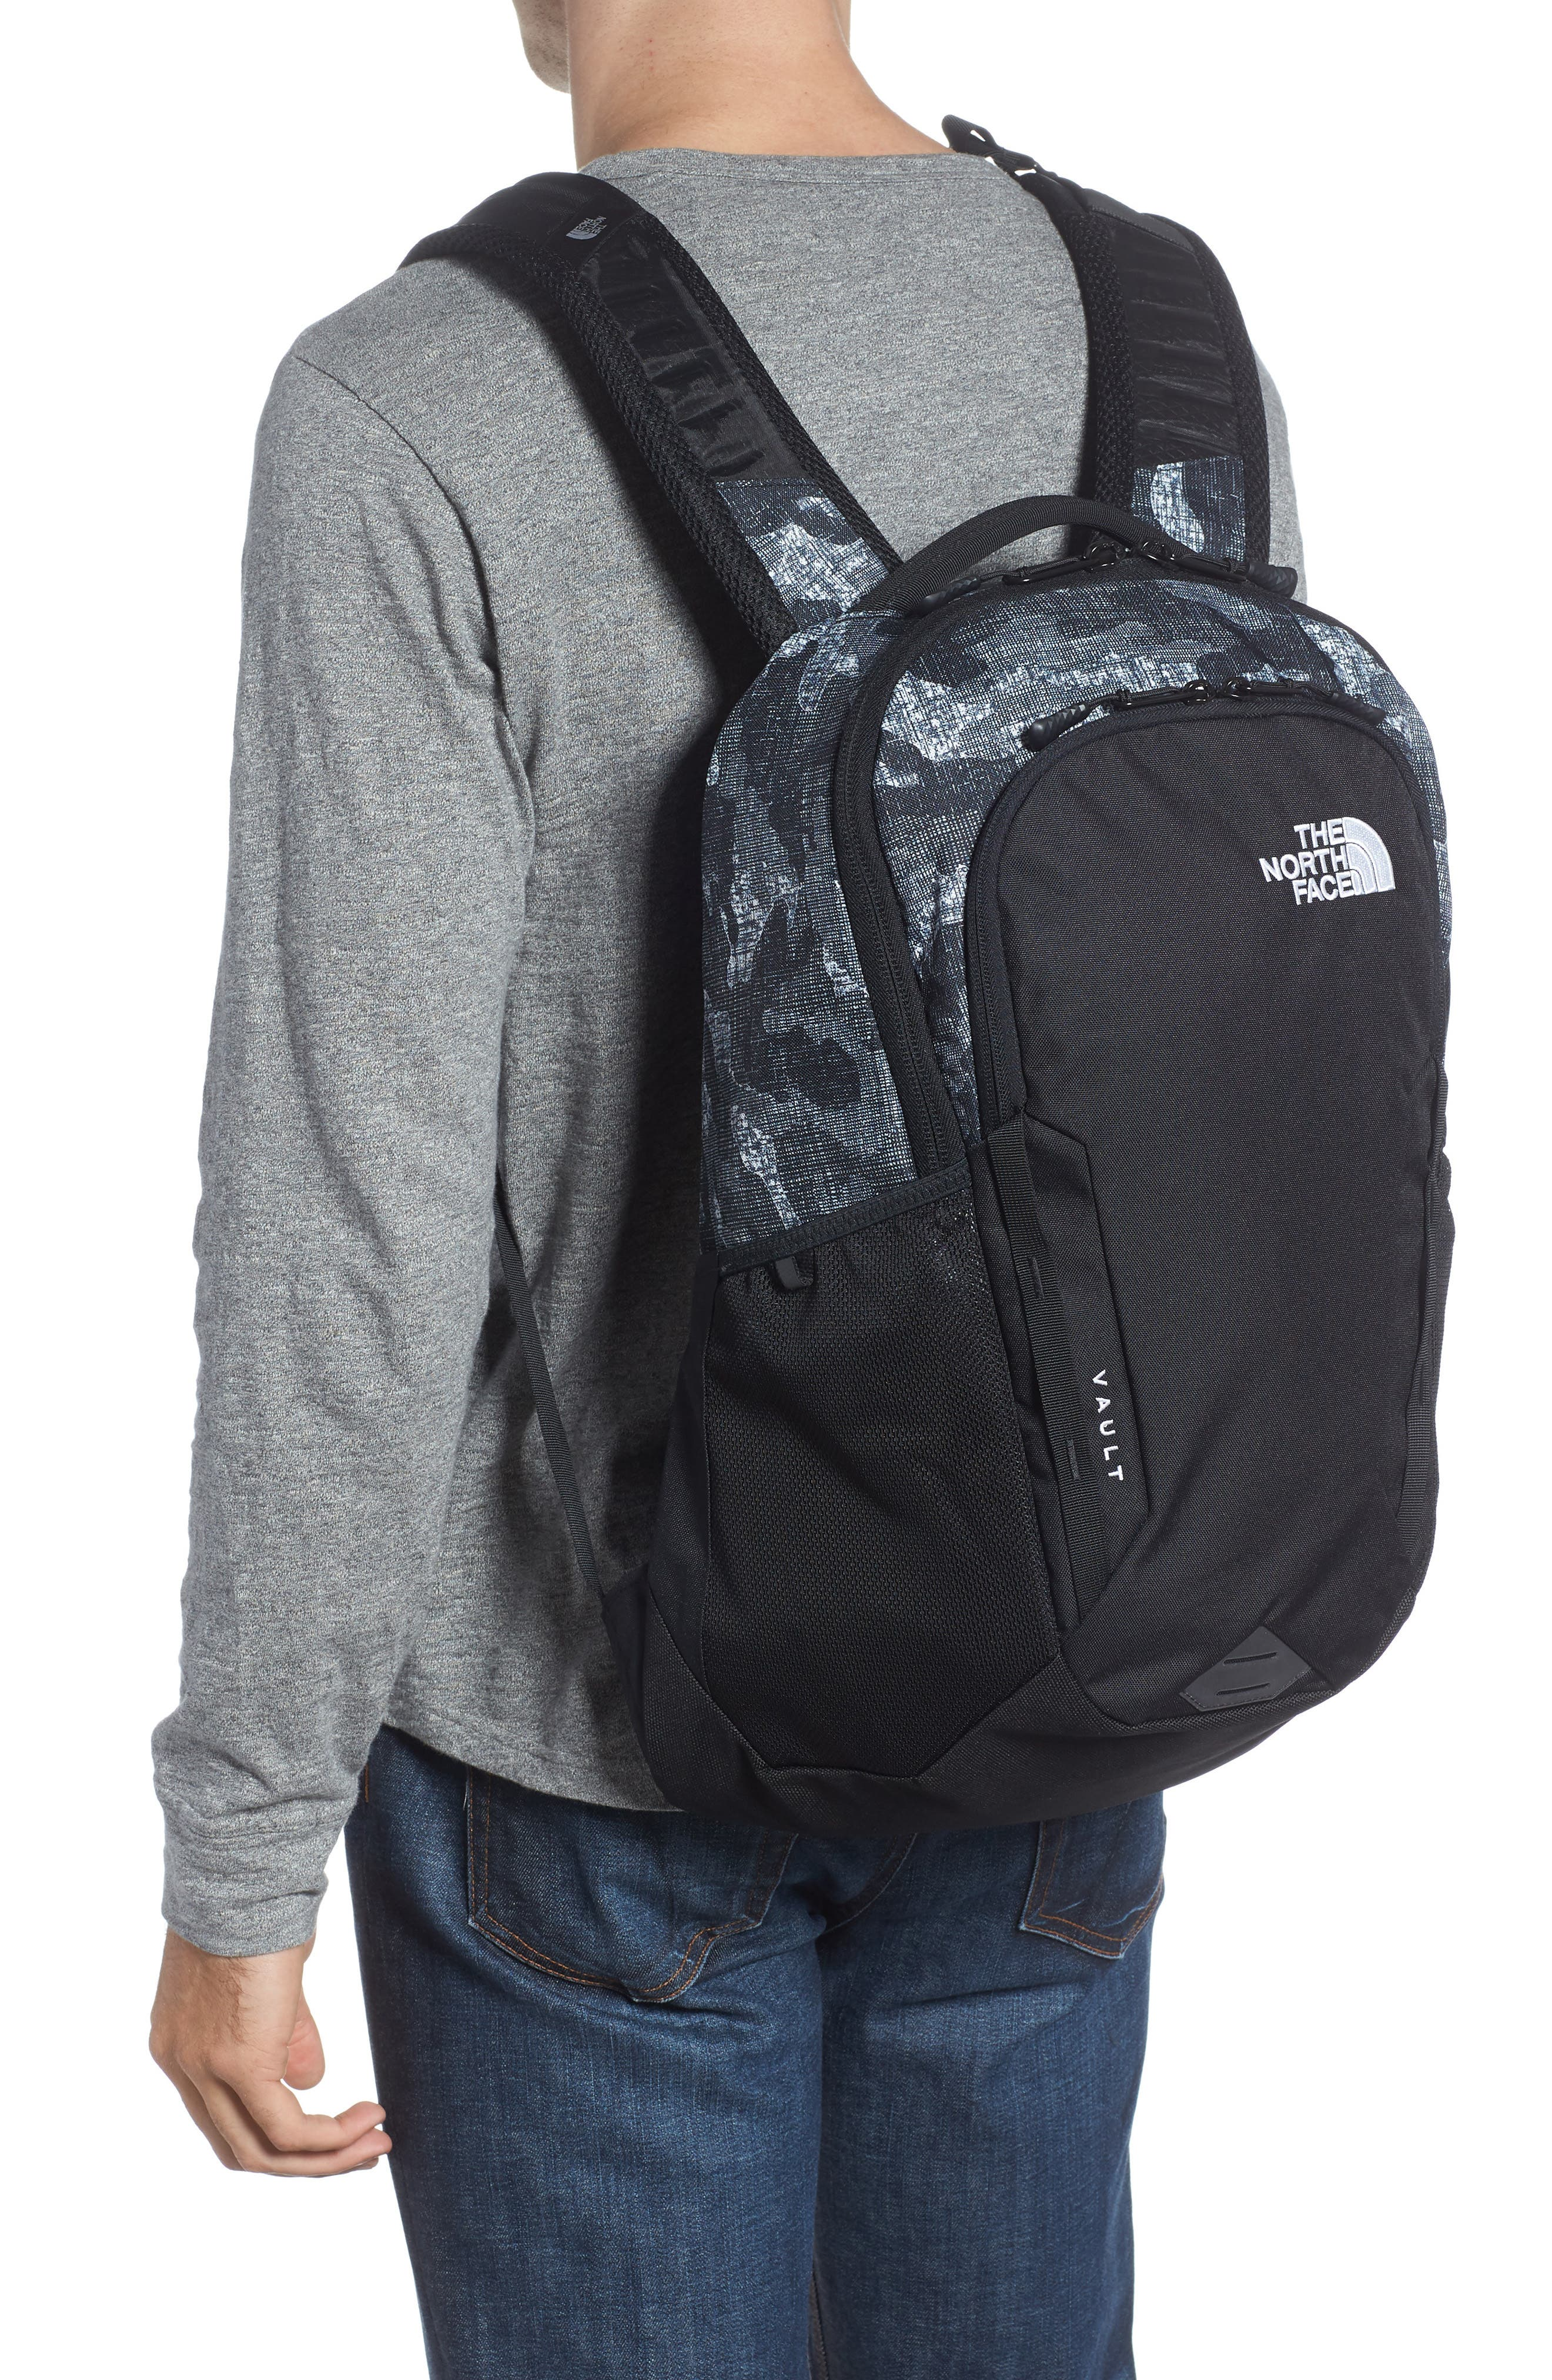 Vault Backpack,                             Alternate thumbnail 2, color,                             Tnf Black Textured Camo Print